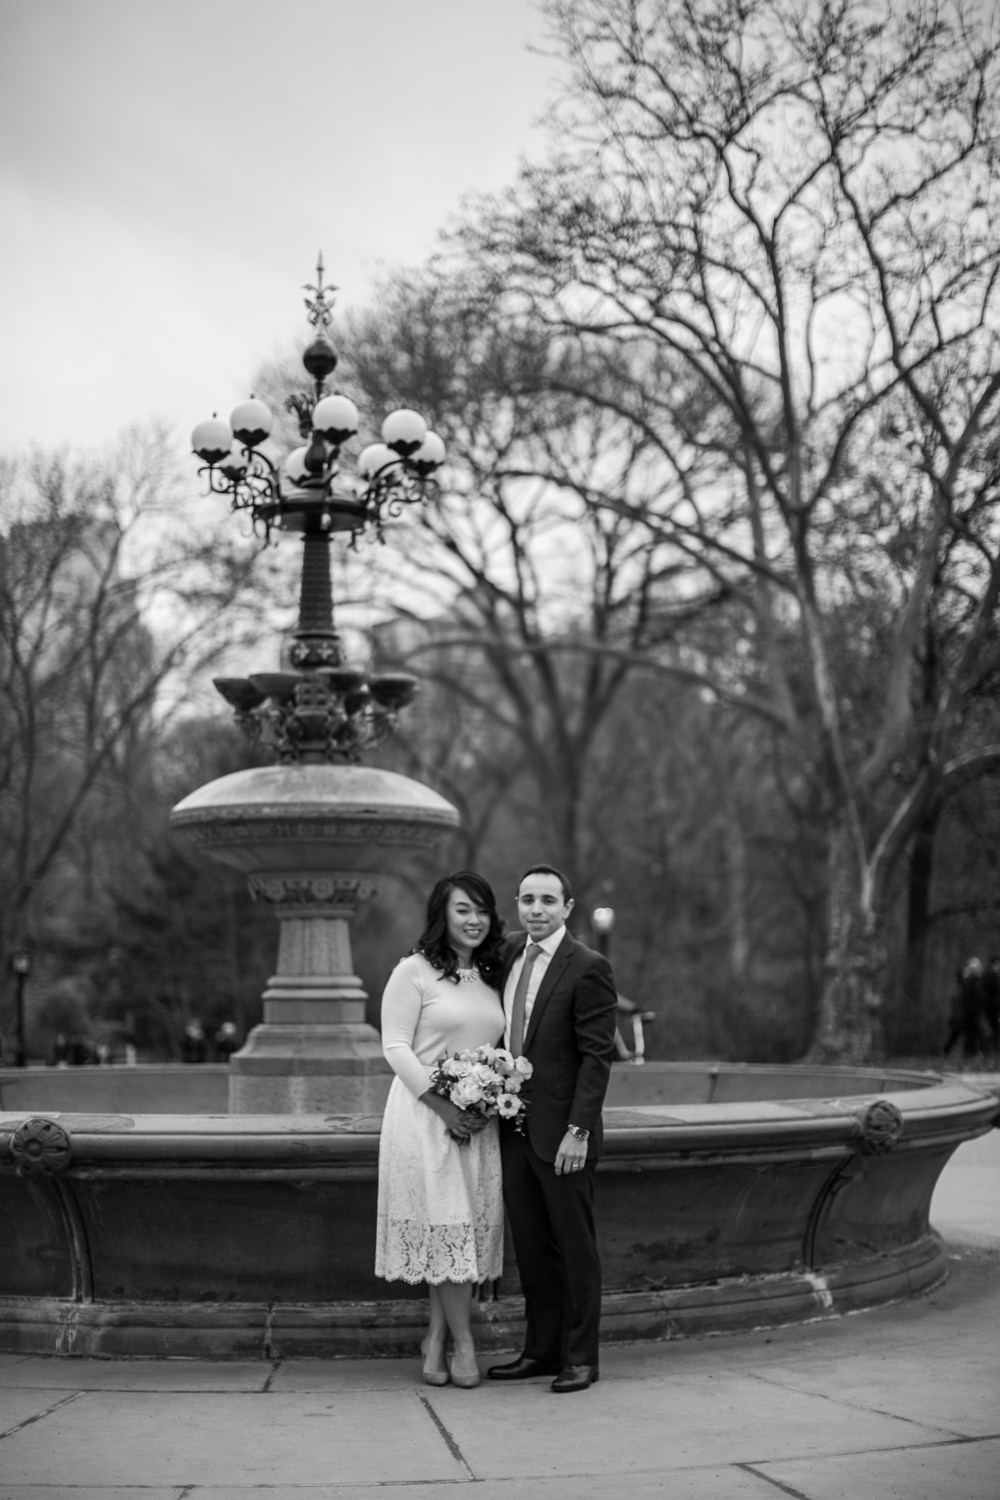 Black and white portrait of bride and groom by fountain